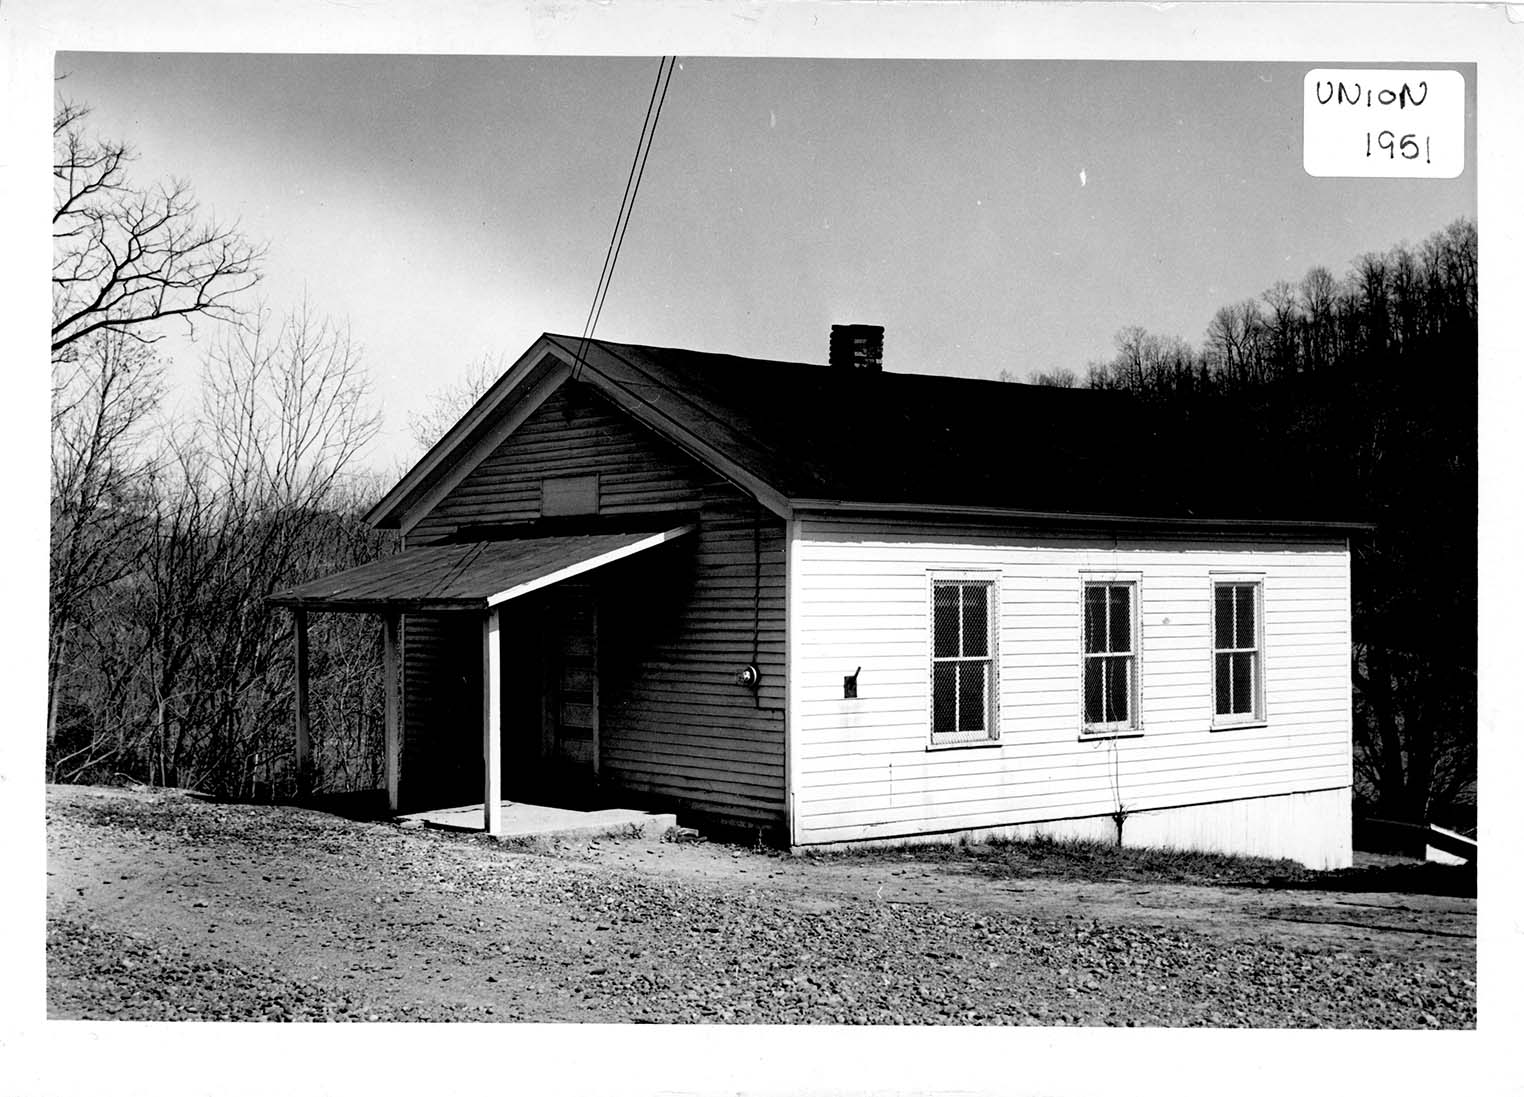 Union School at its original location in Cabell County, likely in the 1950s.